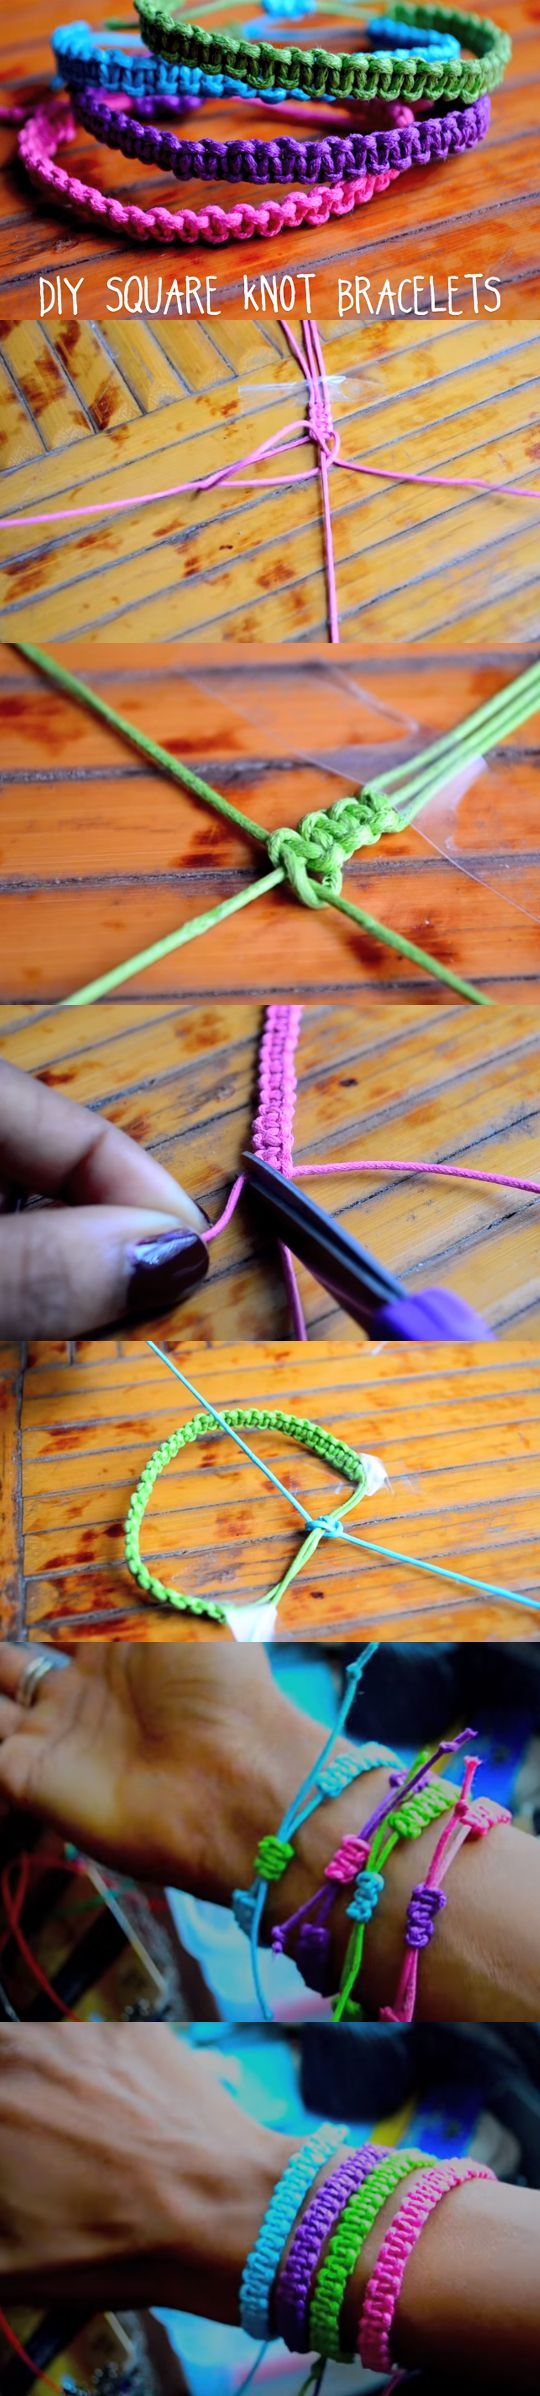 """These lovely bracelets would be the perfect gift to your BFF. Watch the video, and learn how to craft stackable bracelets using the """"square knots"""" technique. See video and written instructions here:"""